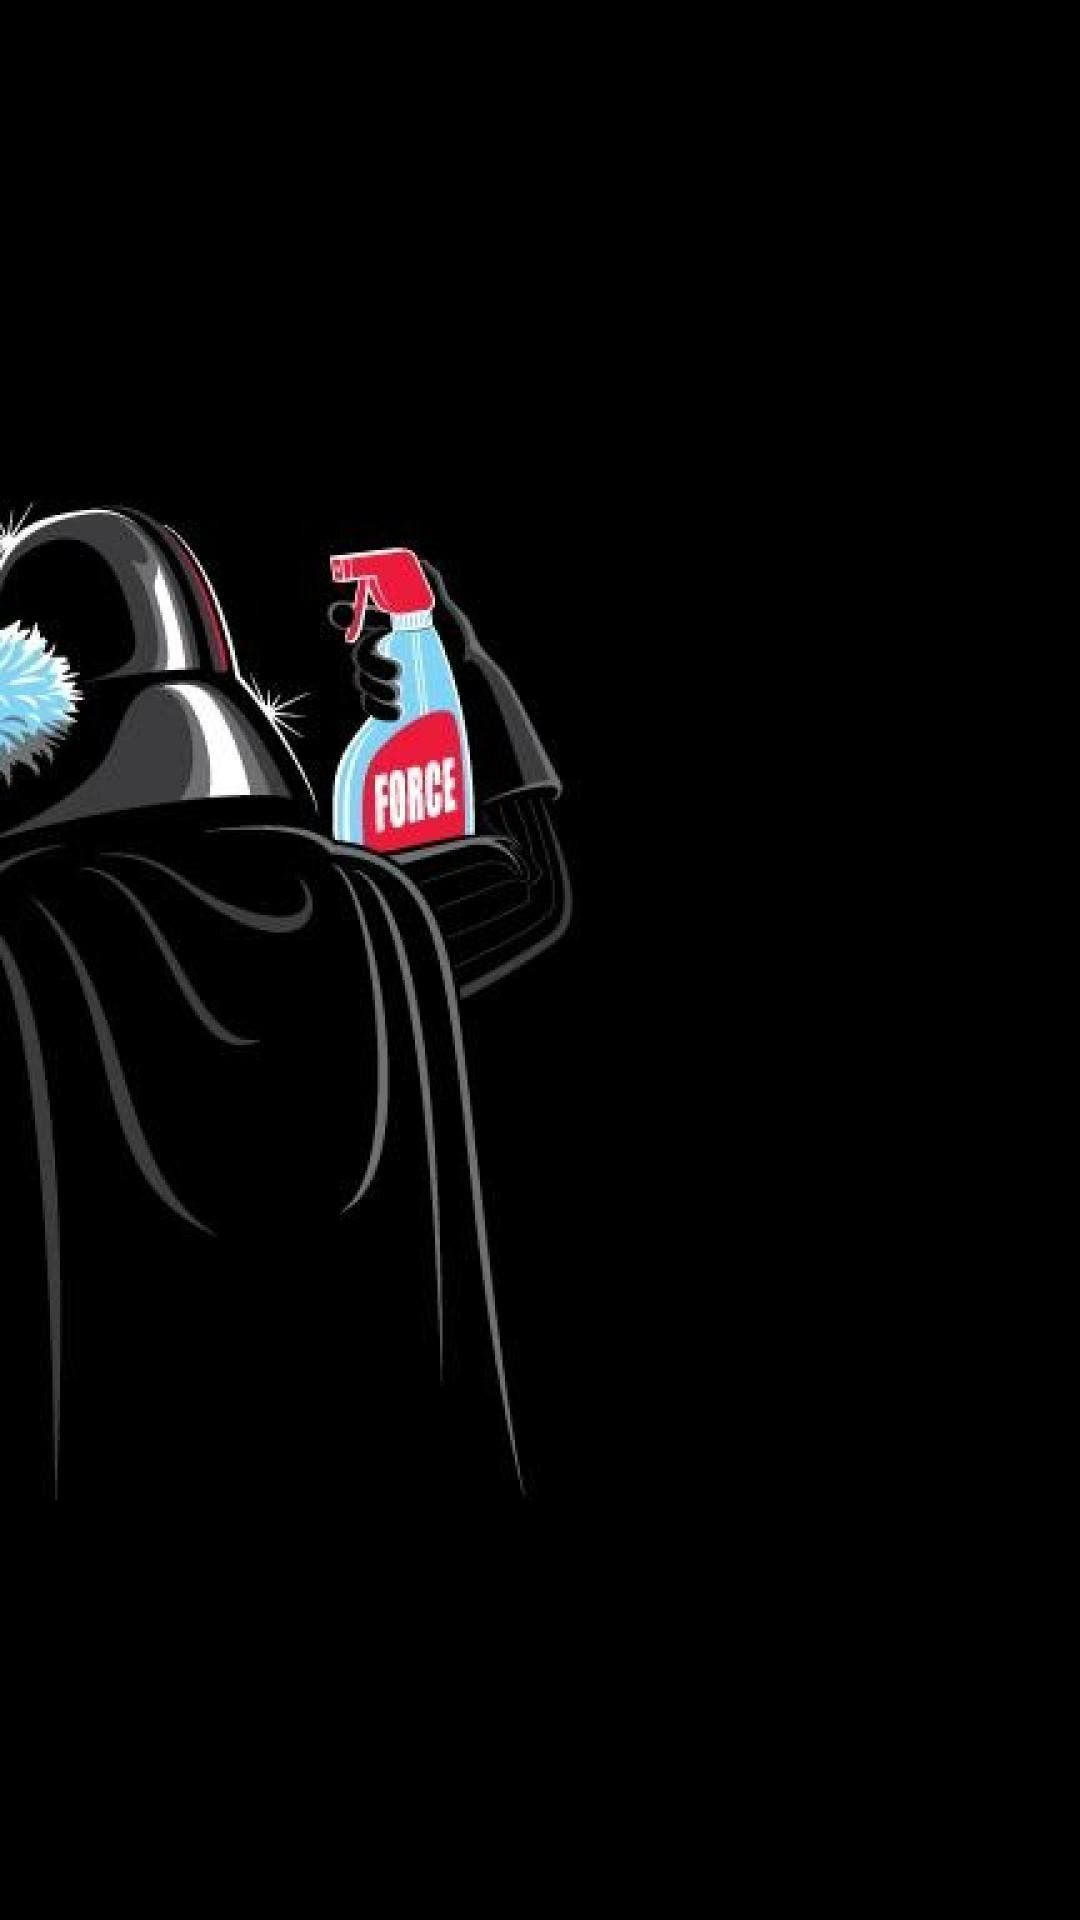 Funny Star Wars Iphone Wallpapers Top Free Funny Star Wars